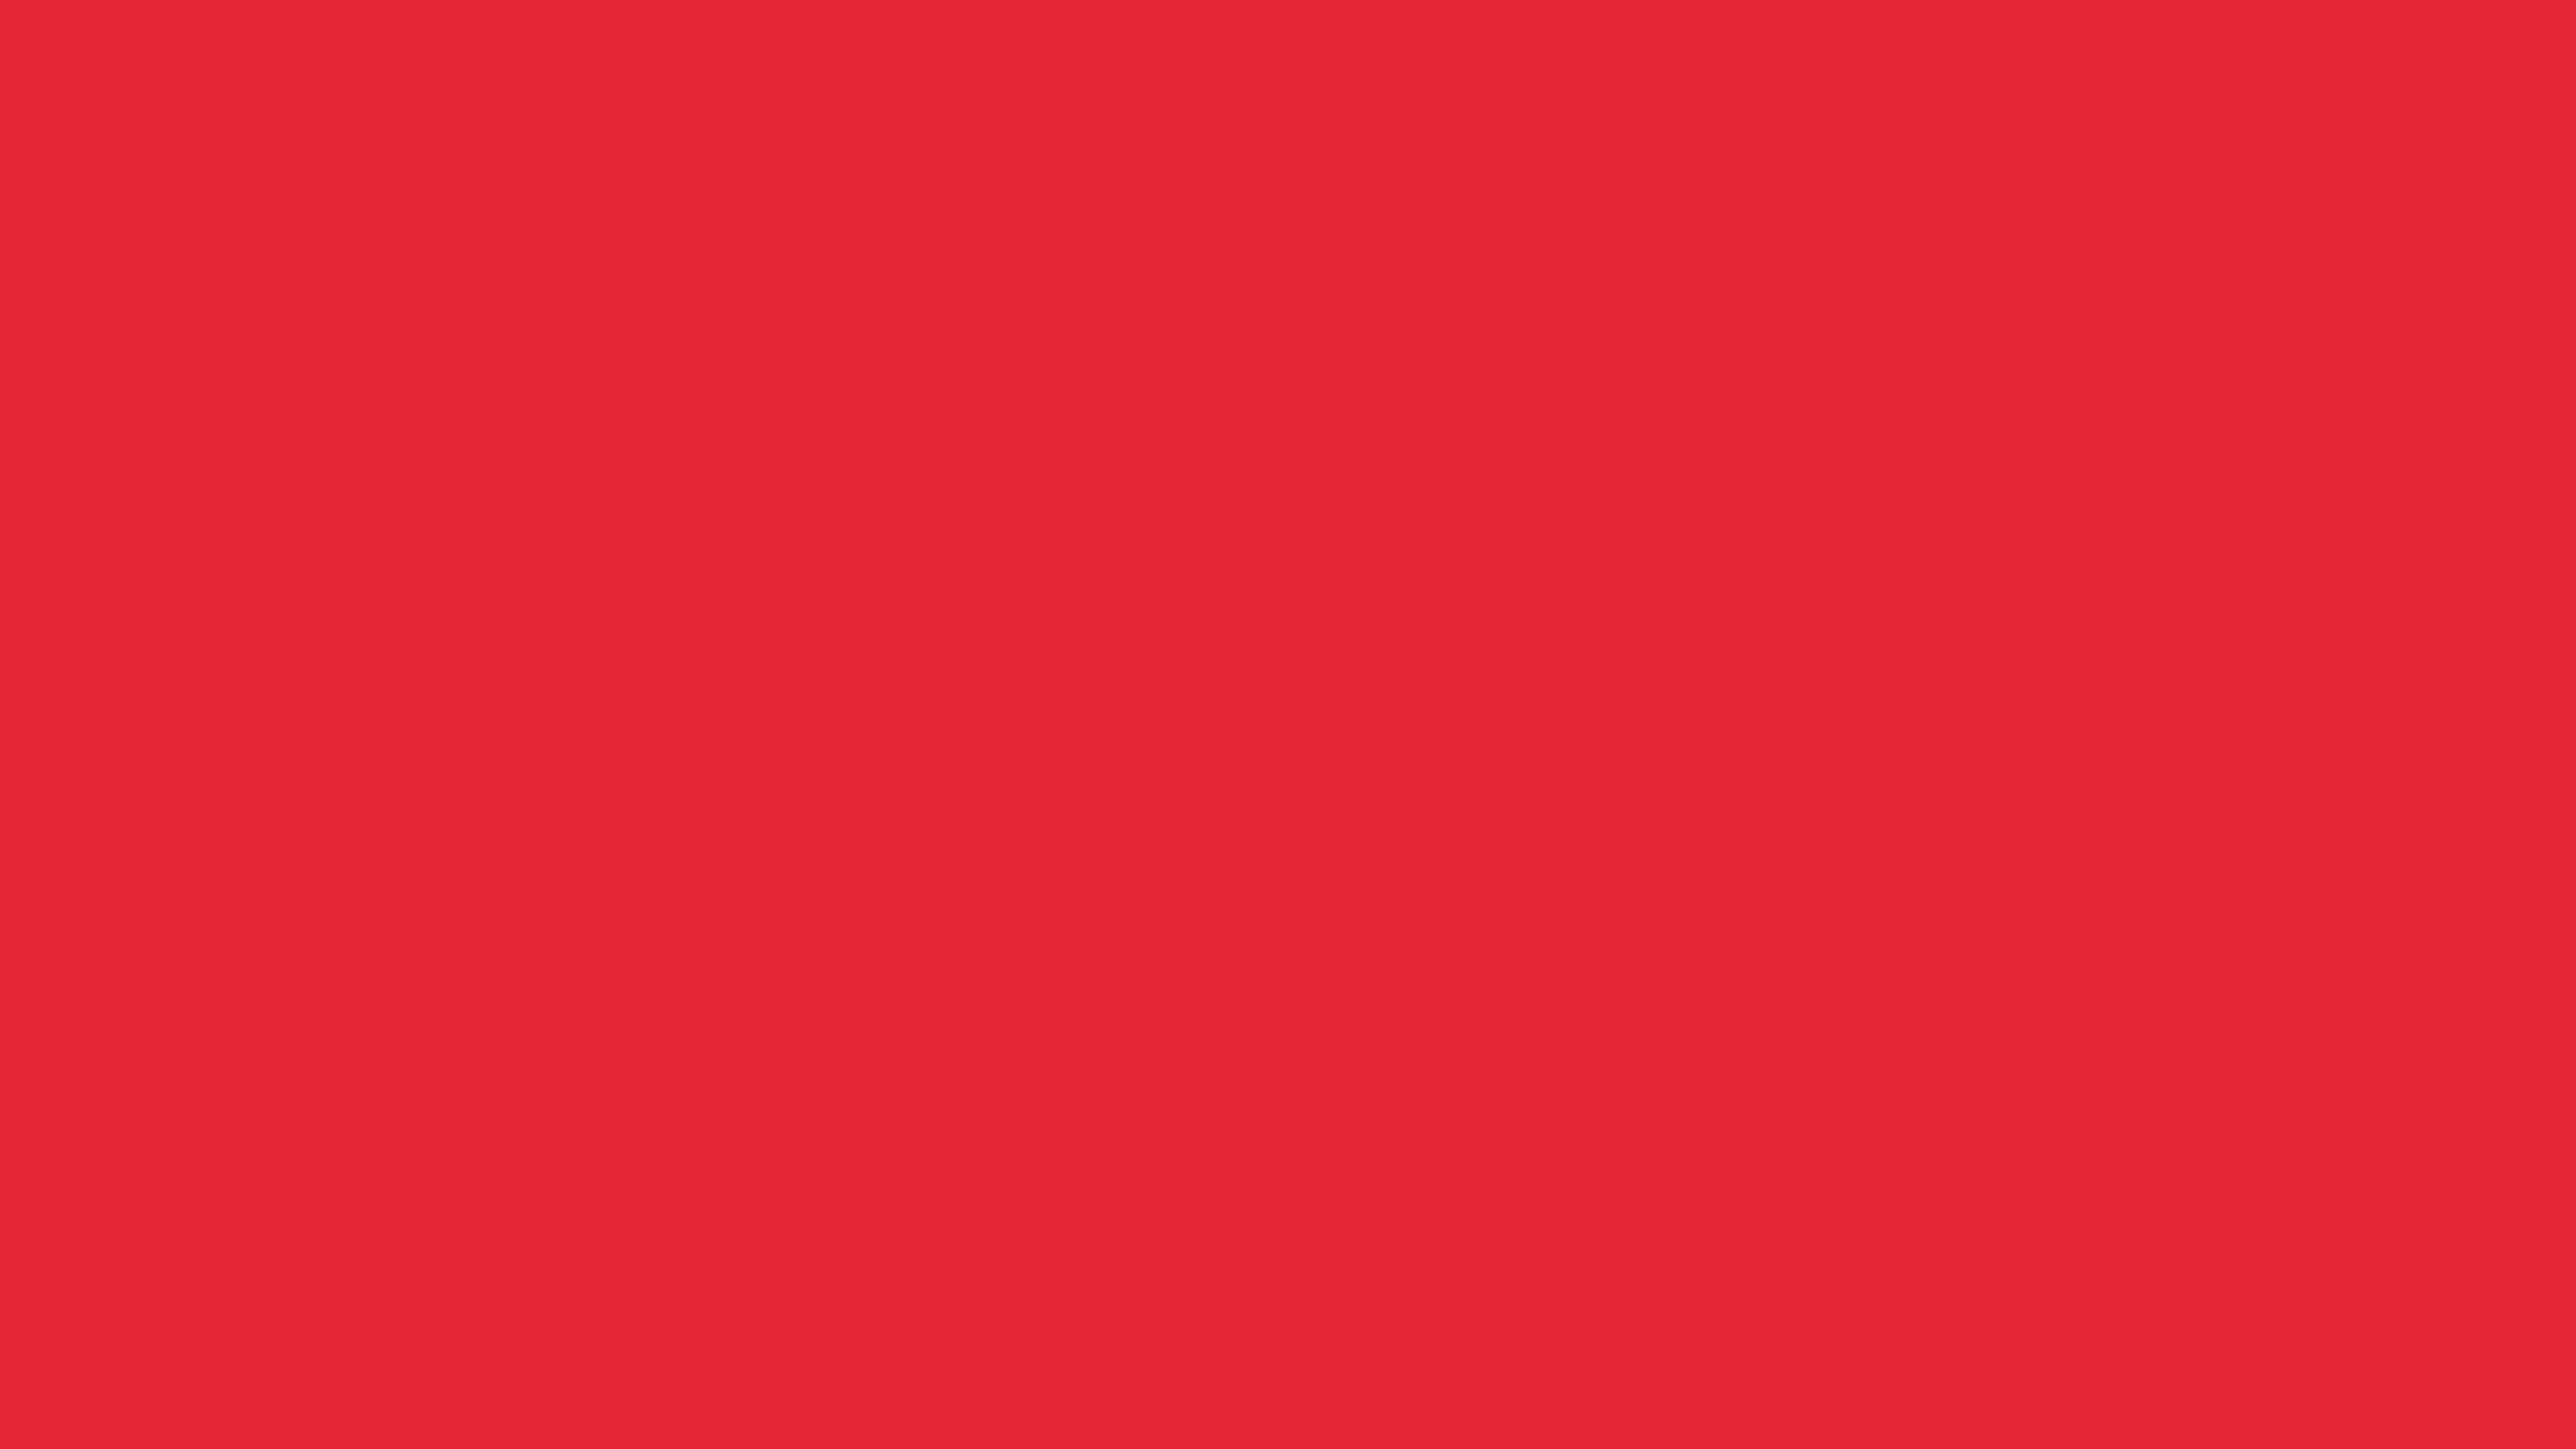 3840x2160 Alizarin Crimson Solid Color Background